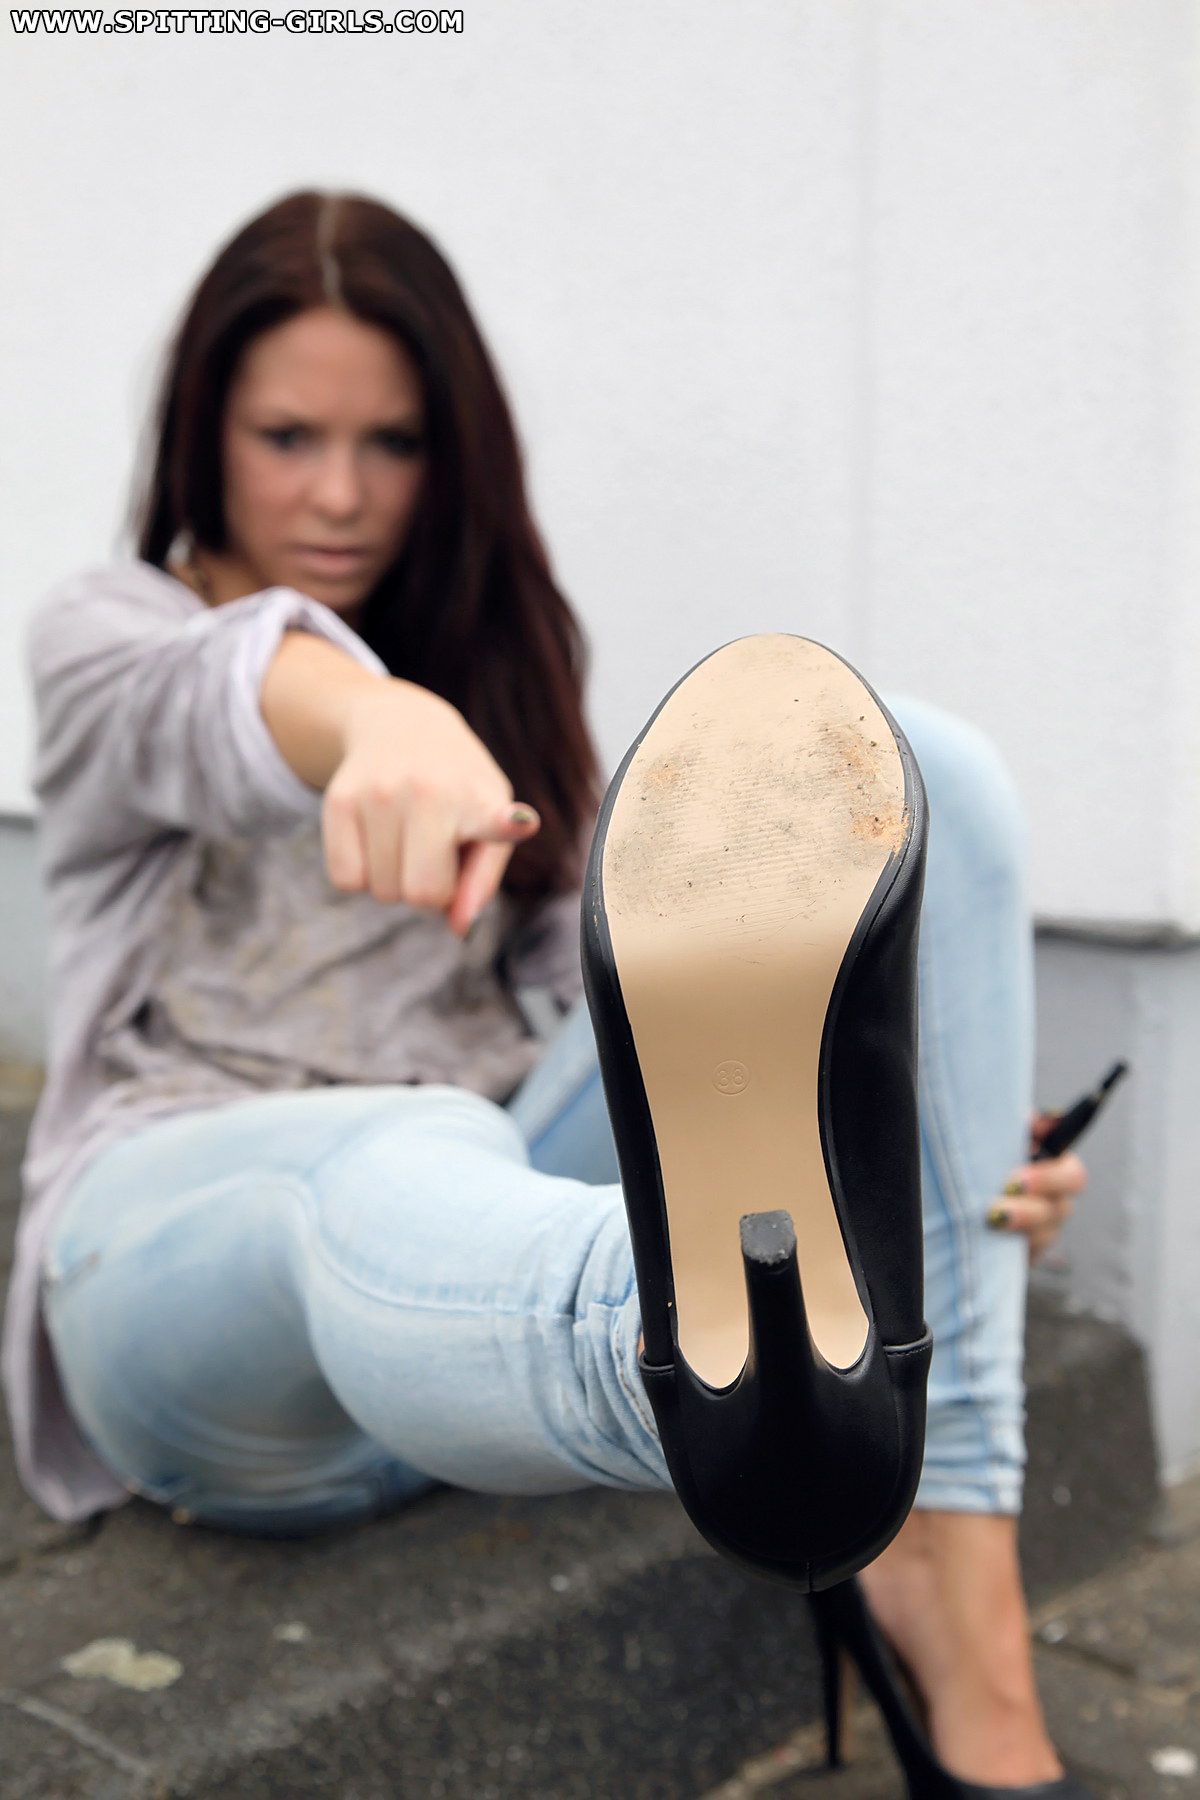 sexy pics of spitting girls in heel